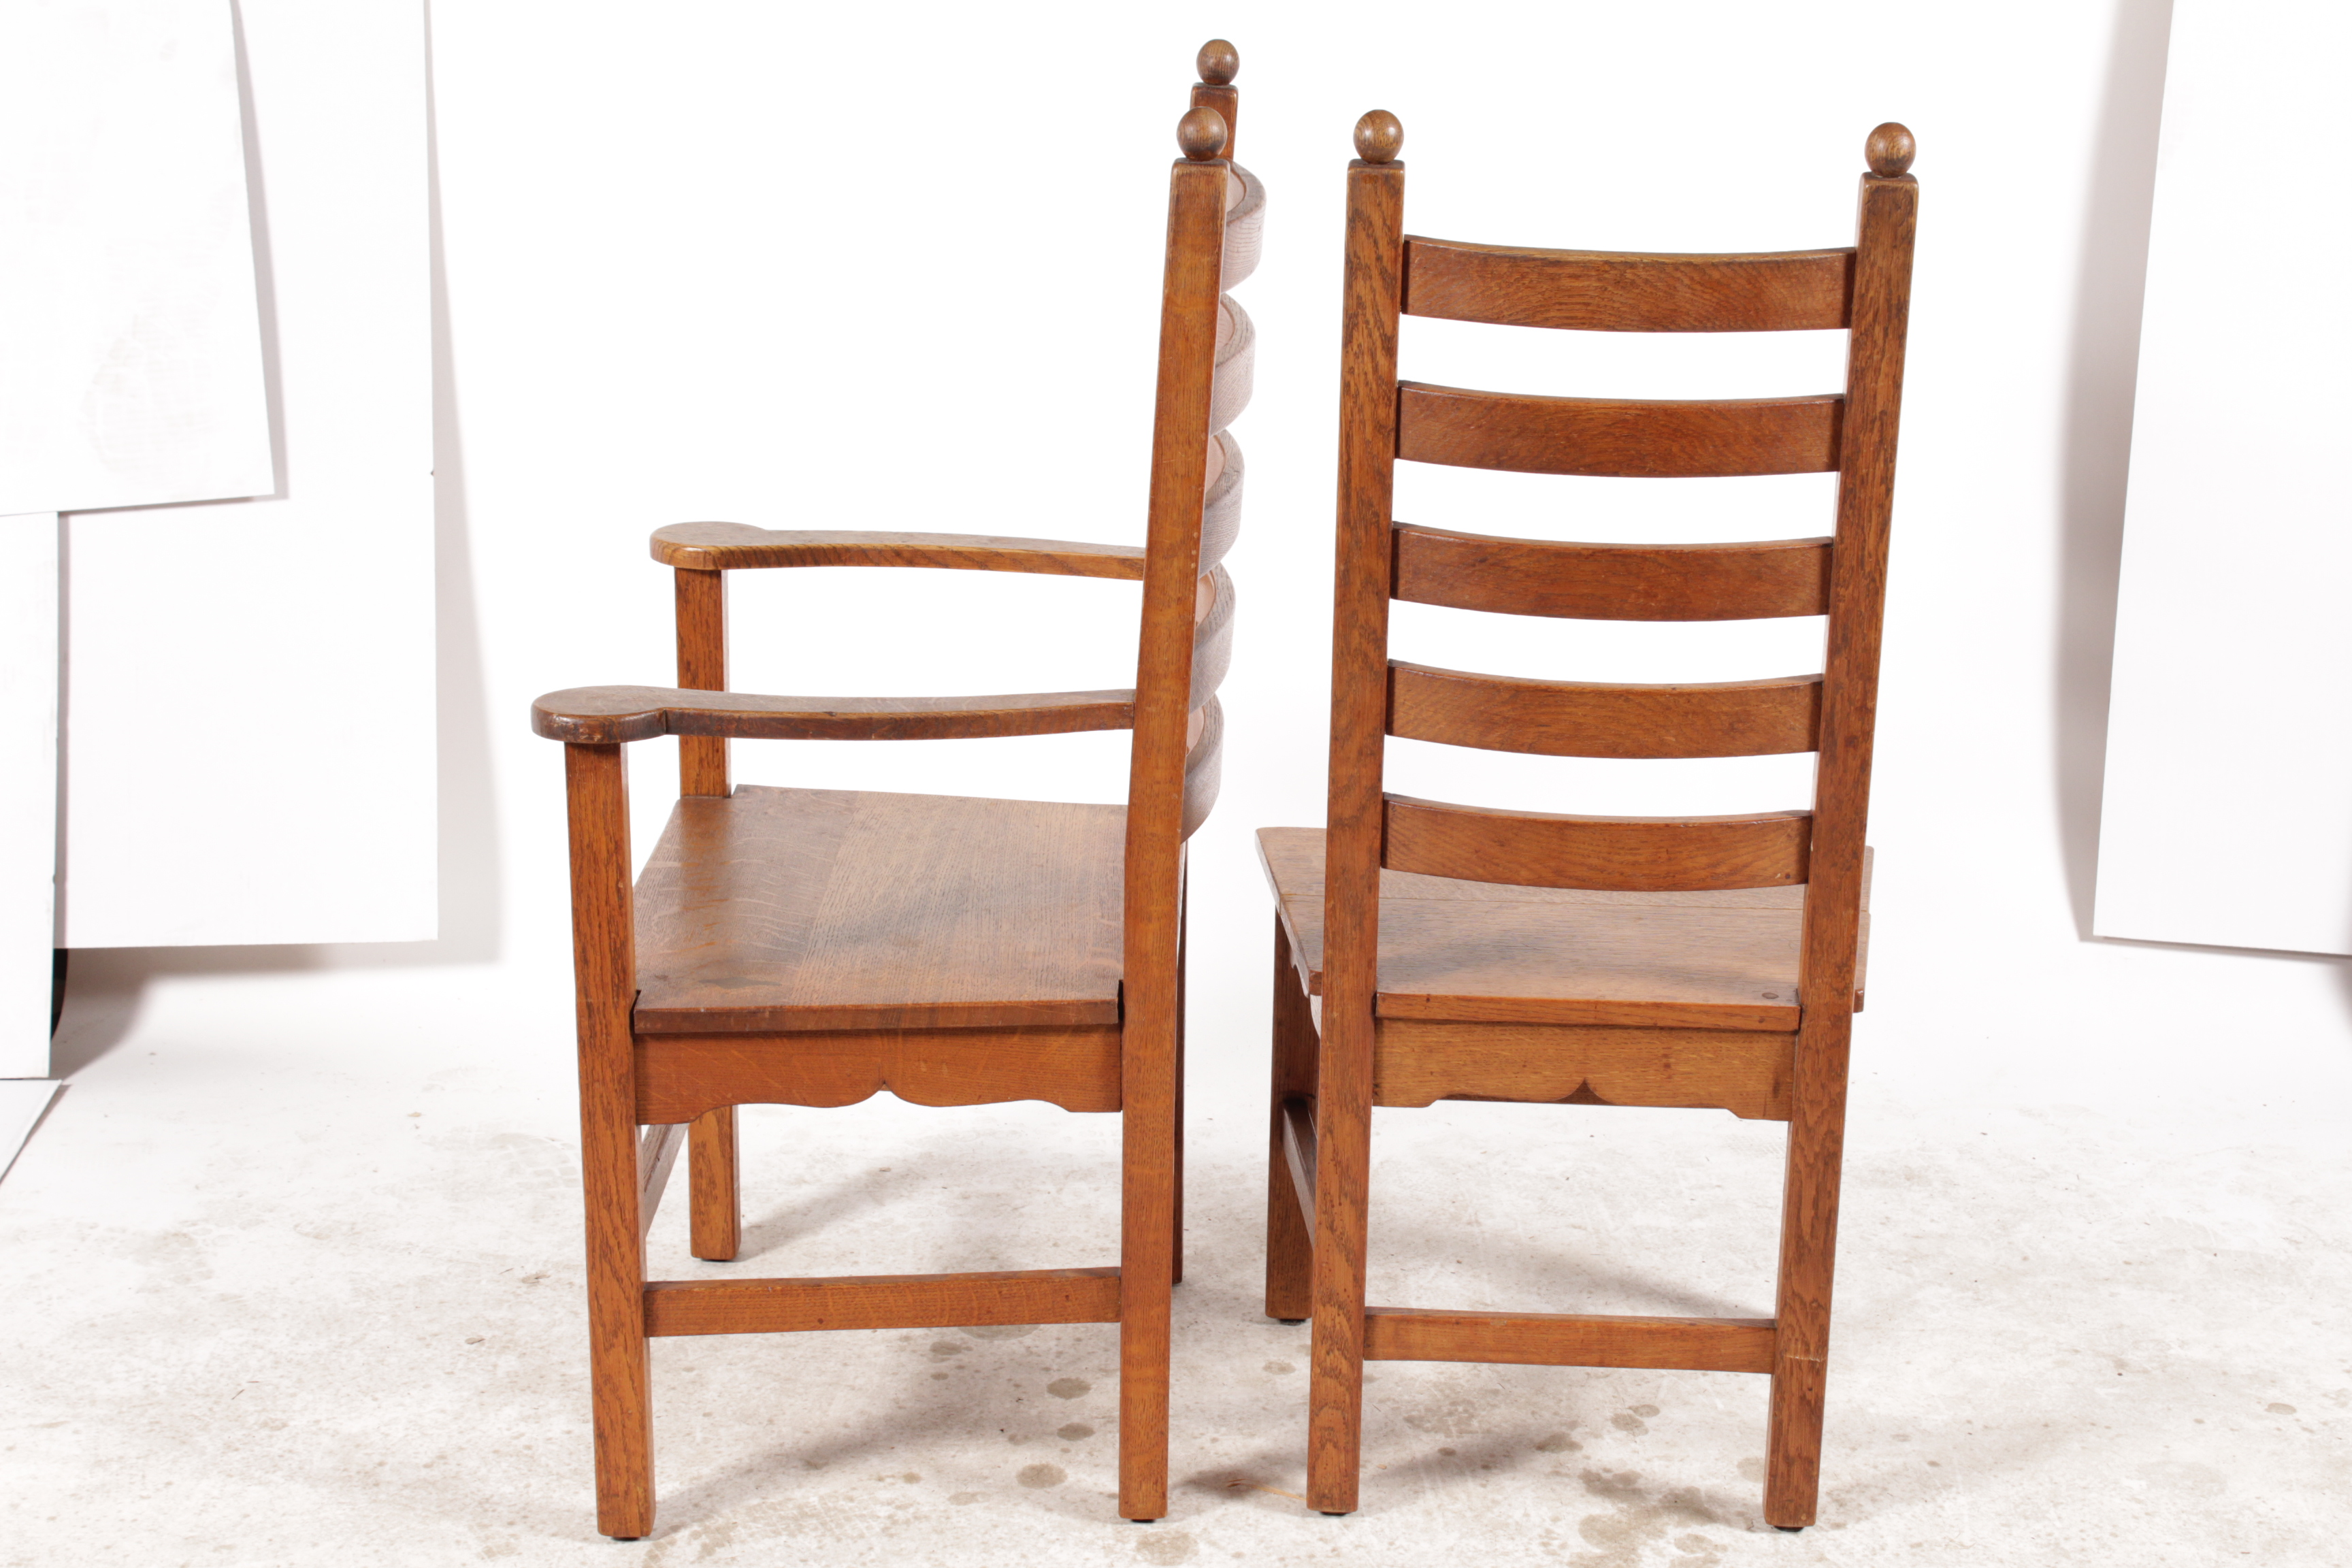 Genial Belgian 1940s Shaker Style Dining Chairs   Set Of 6 For Sale   Image 3